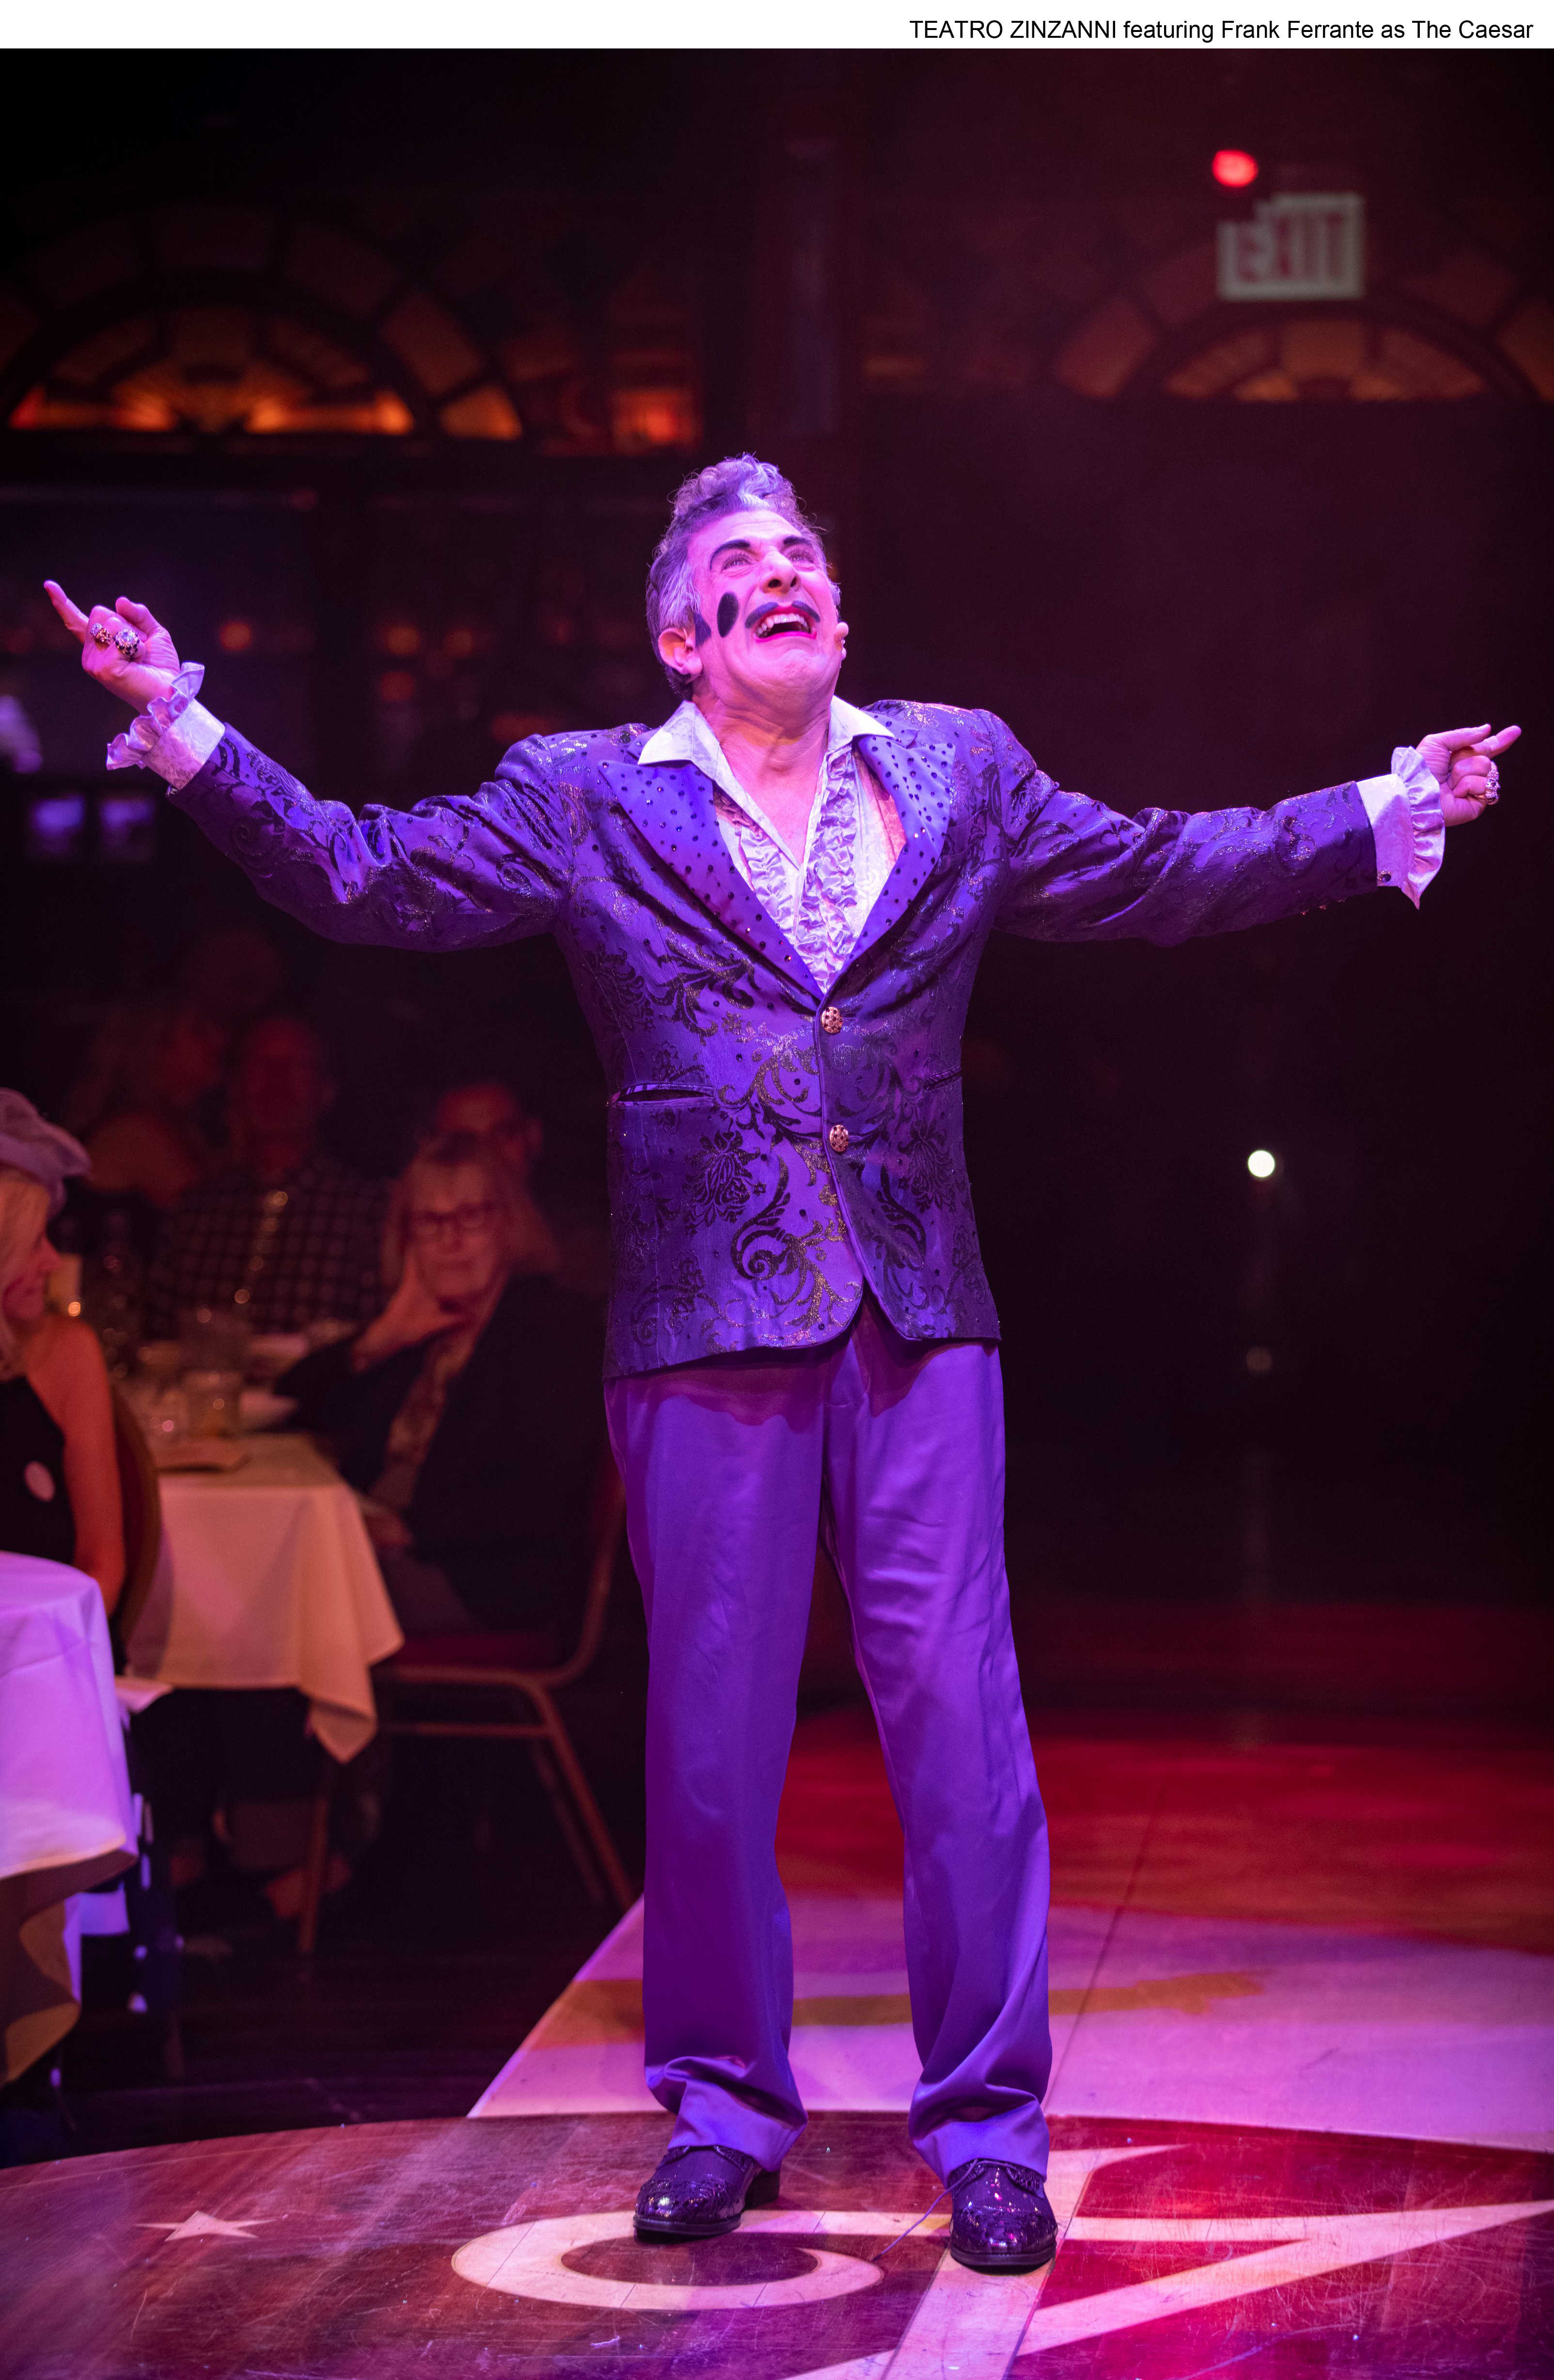 Frank Ferrante reprises his role as The Caesar in the revamped Teatro ZinZanni.